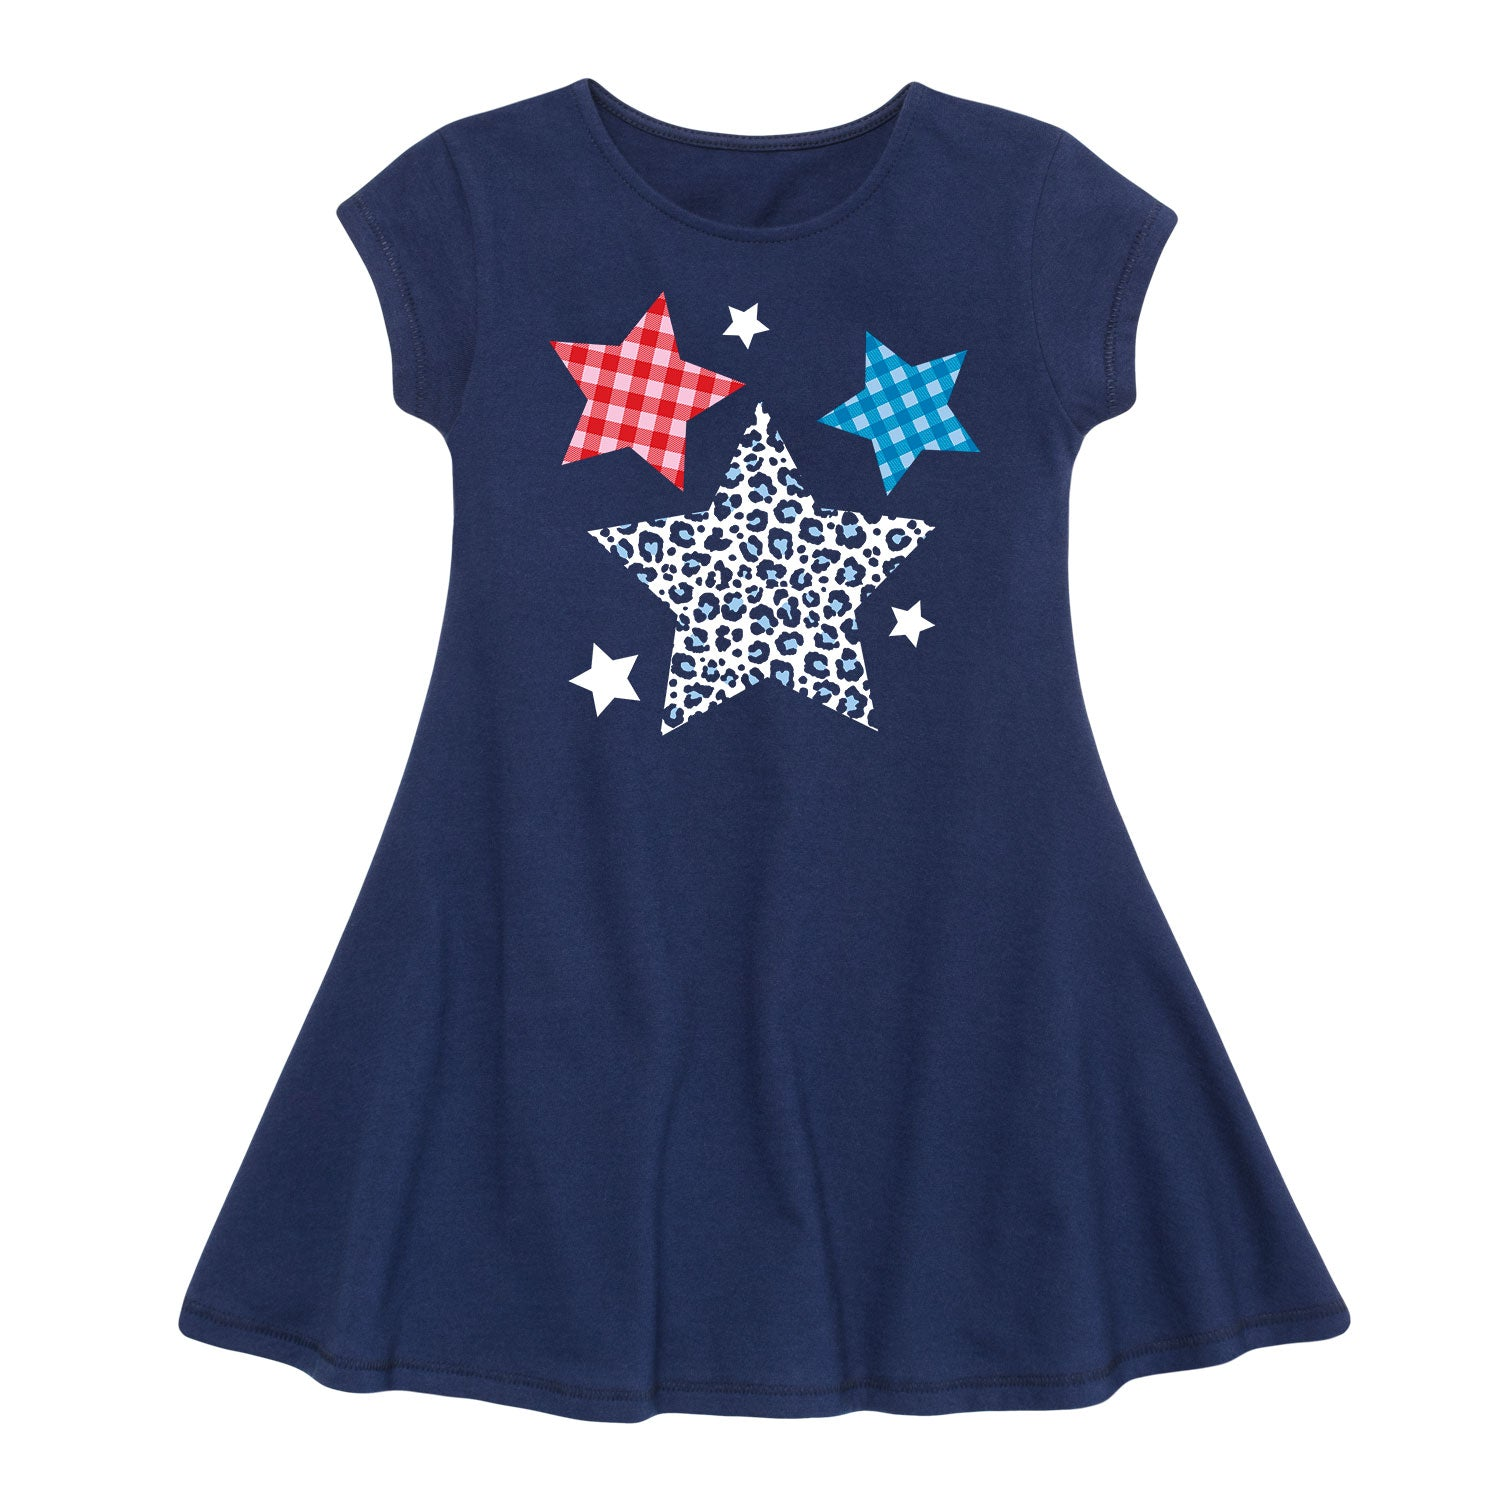 Patterned Stars - Toddler Girl Fit And Flare Dress